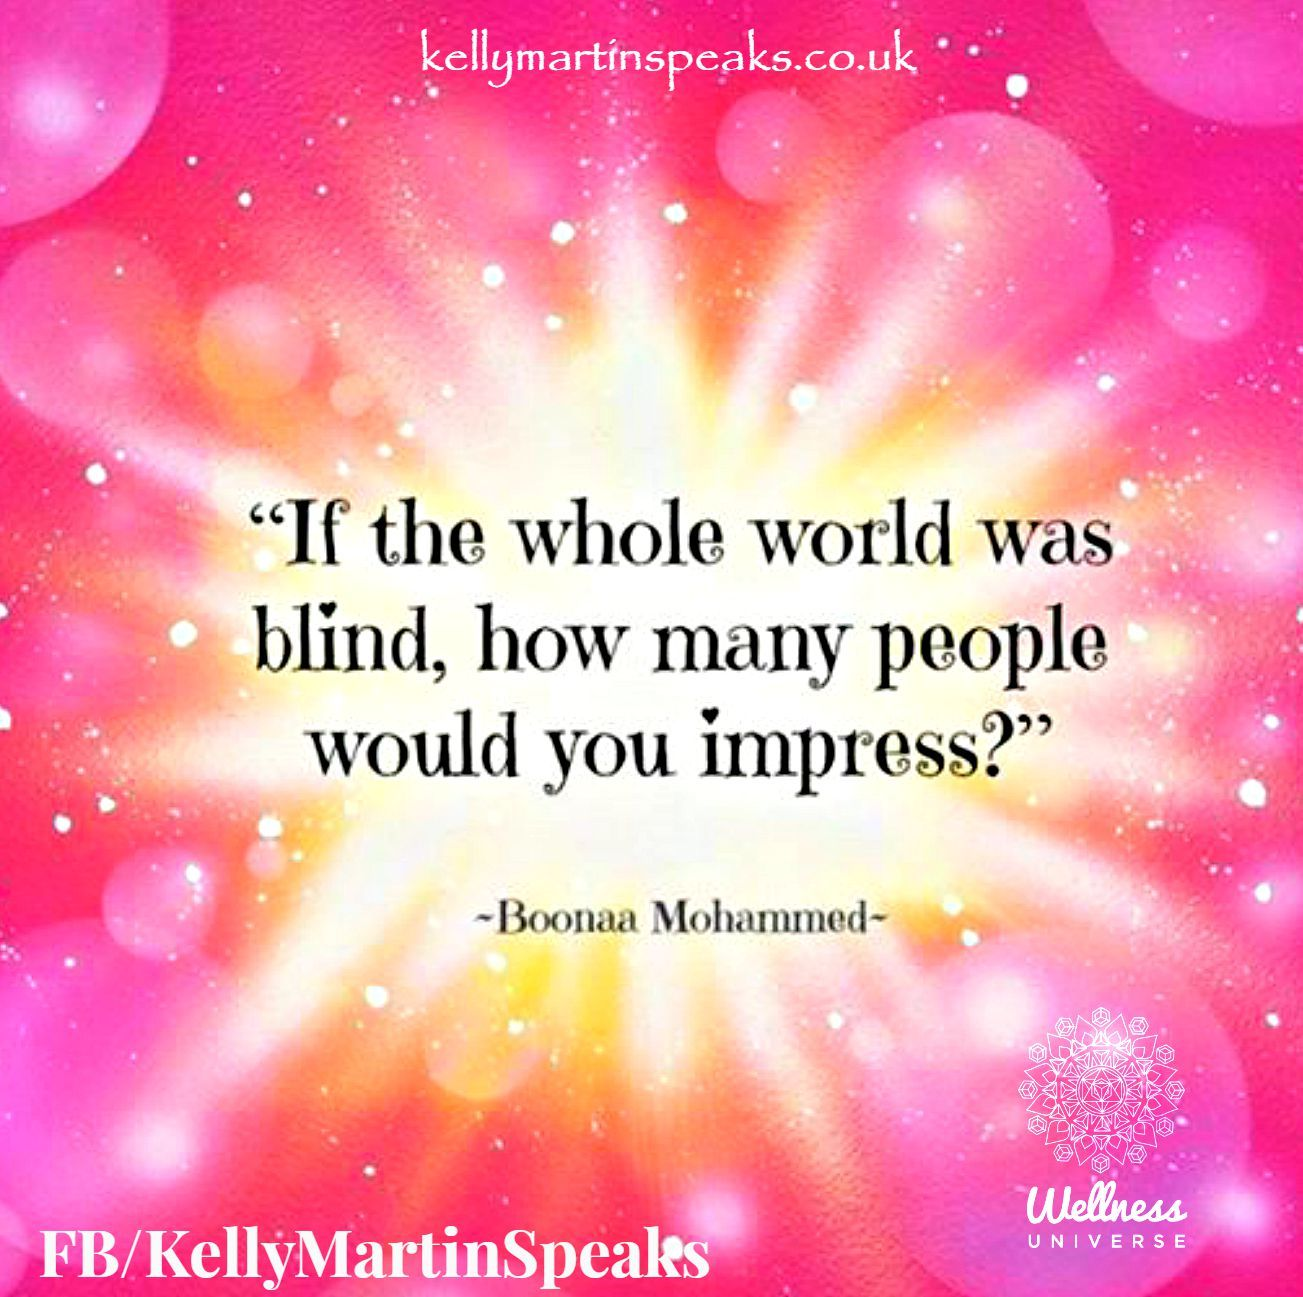 If the whole world was blind, how many people would you